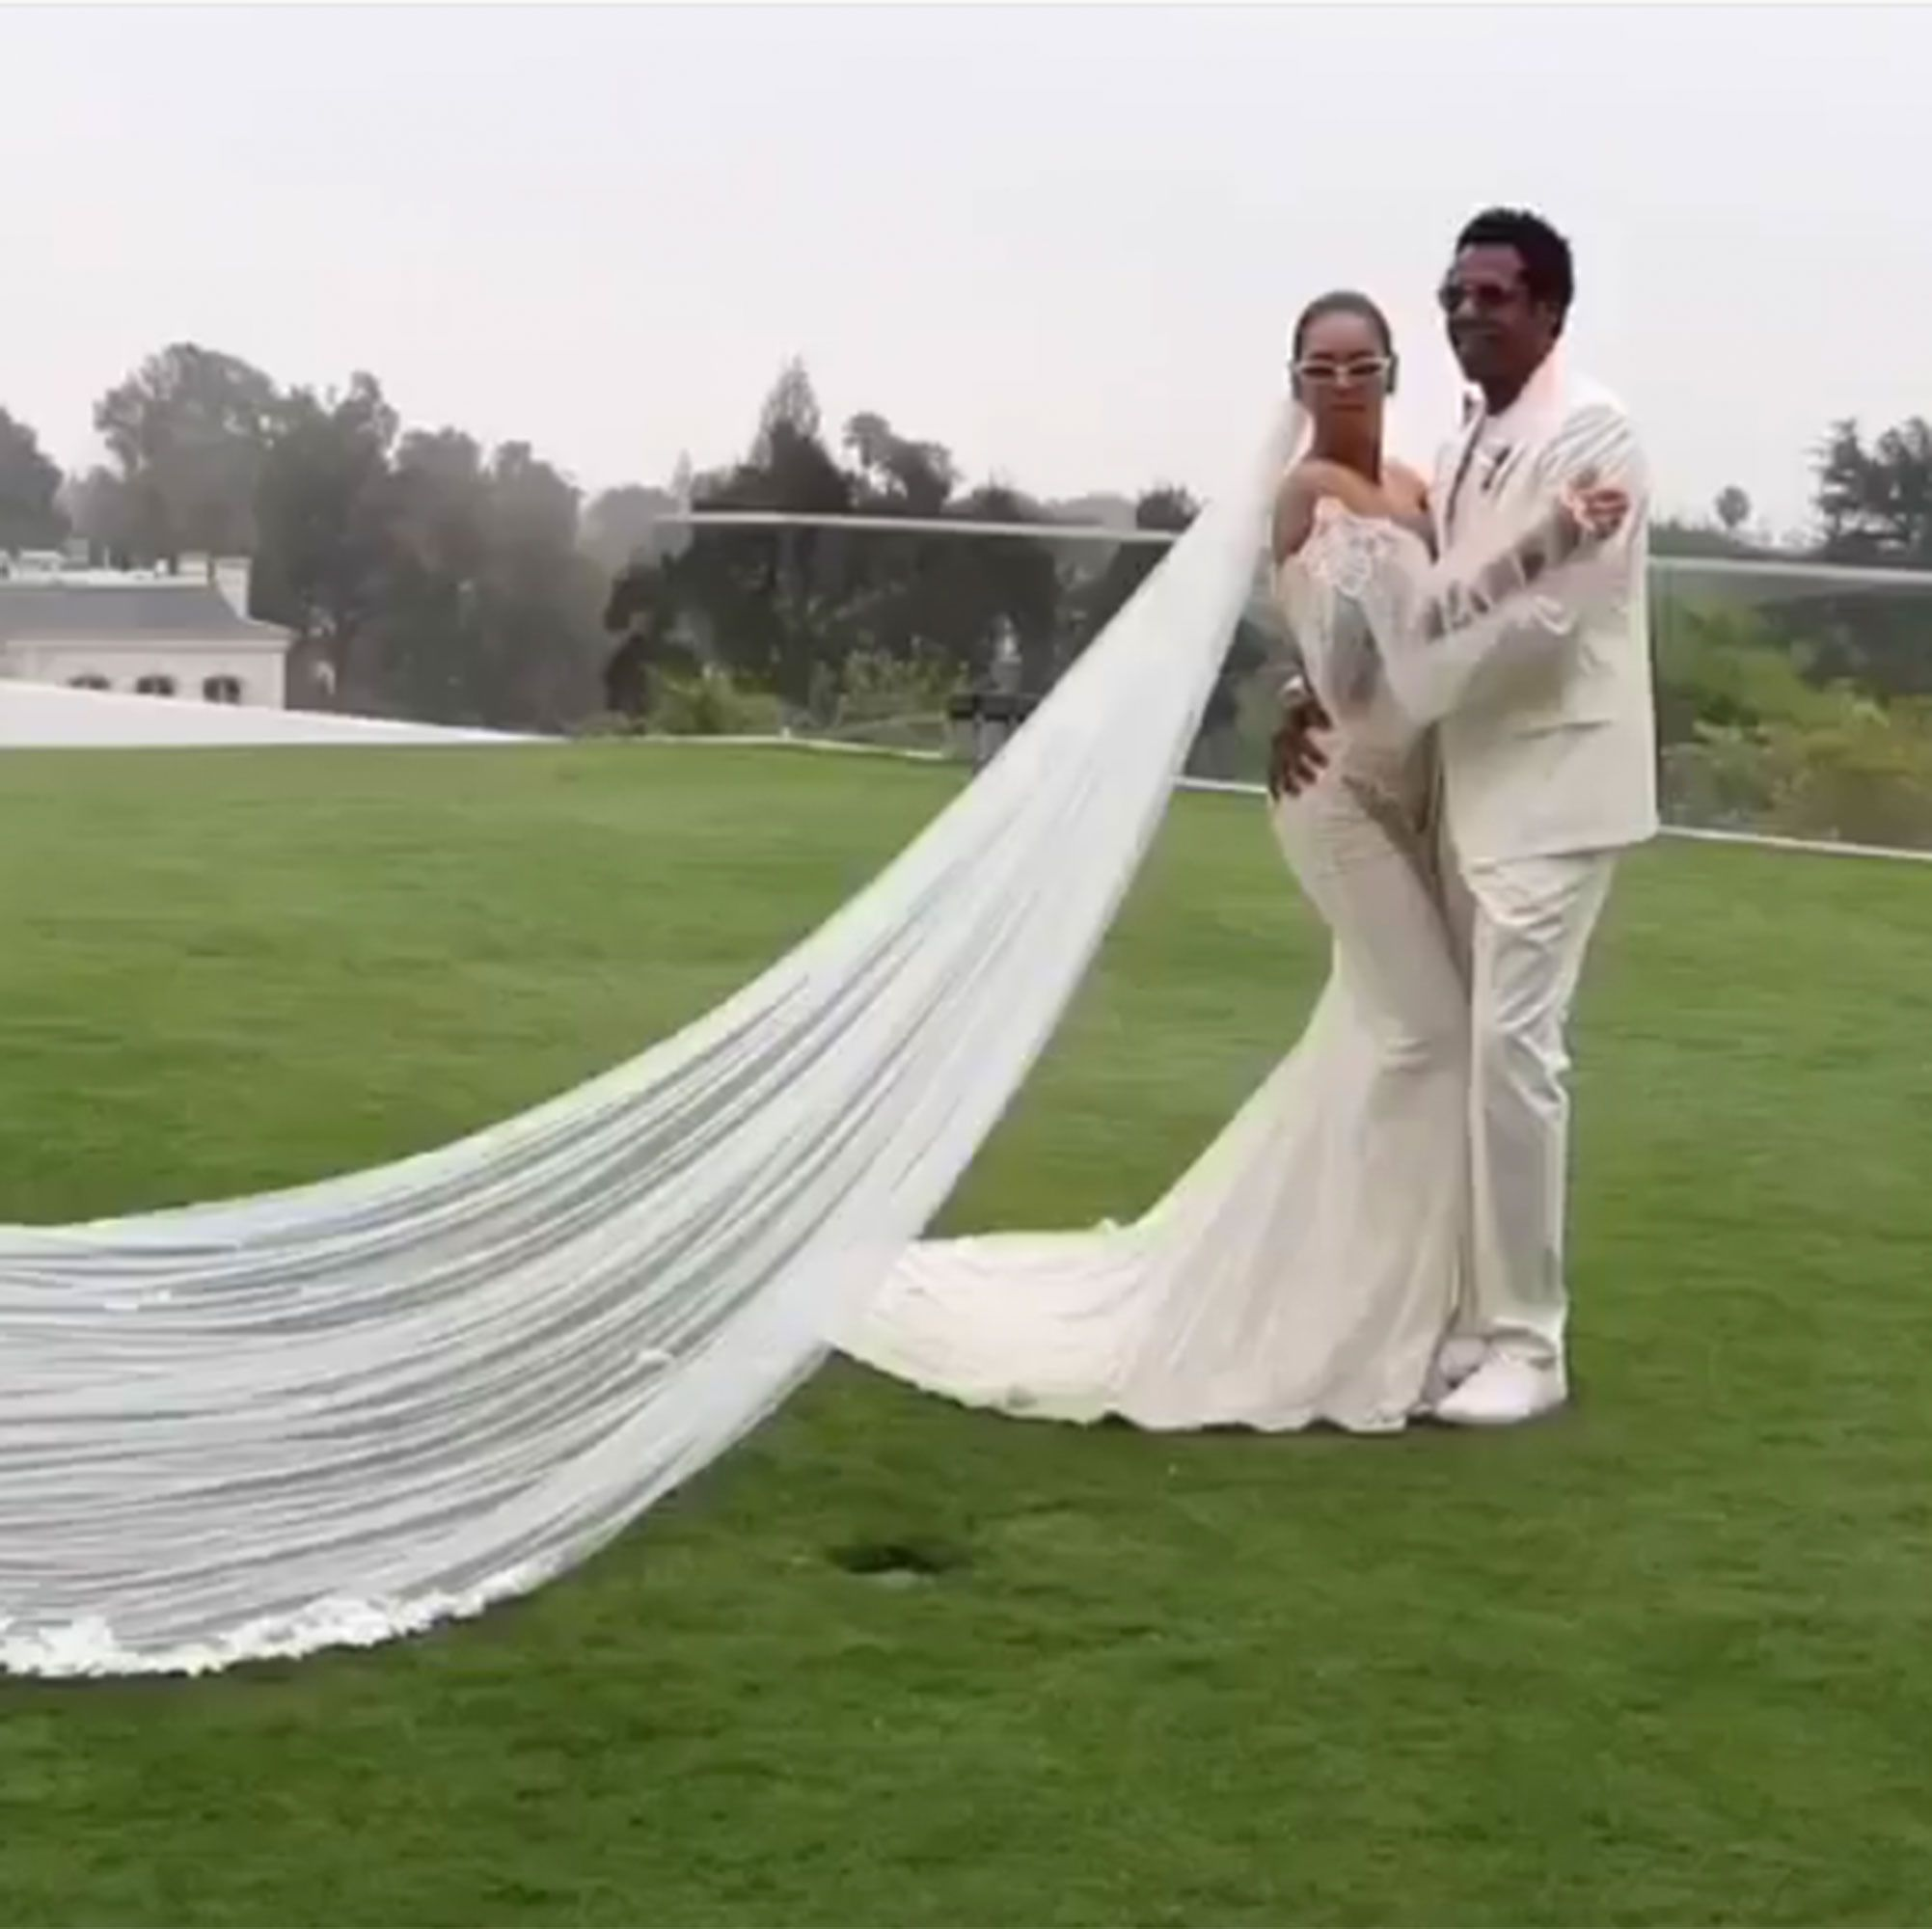 Beyonce Gives First Glimpse At Her Galia Lahav Wedding Gown Worn For Vow Renewal To Jay Z Vow Renewal Dress Galia Lahav Wedding Gowns Celebrity Wedding Dresses